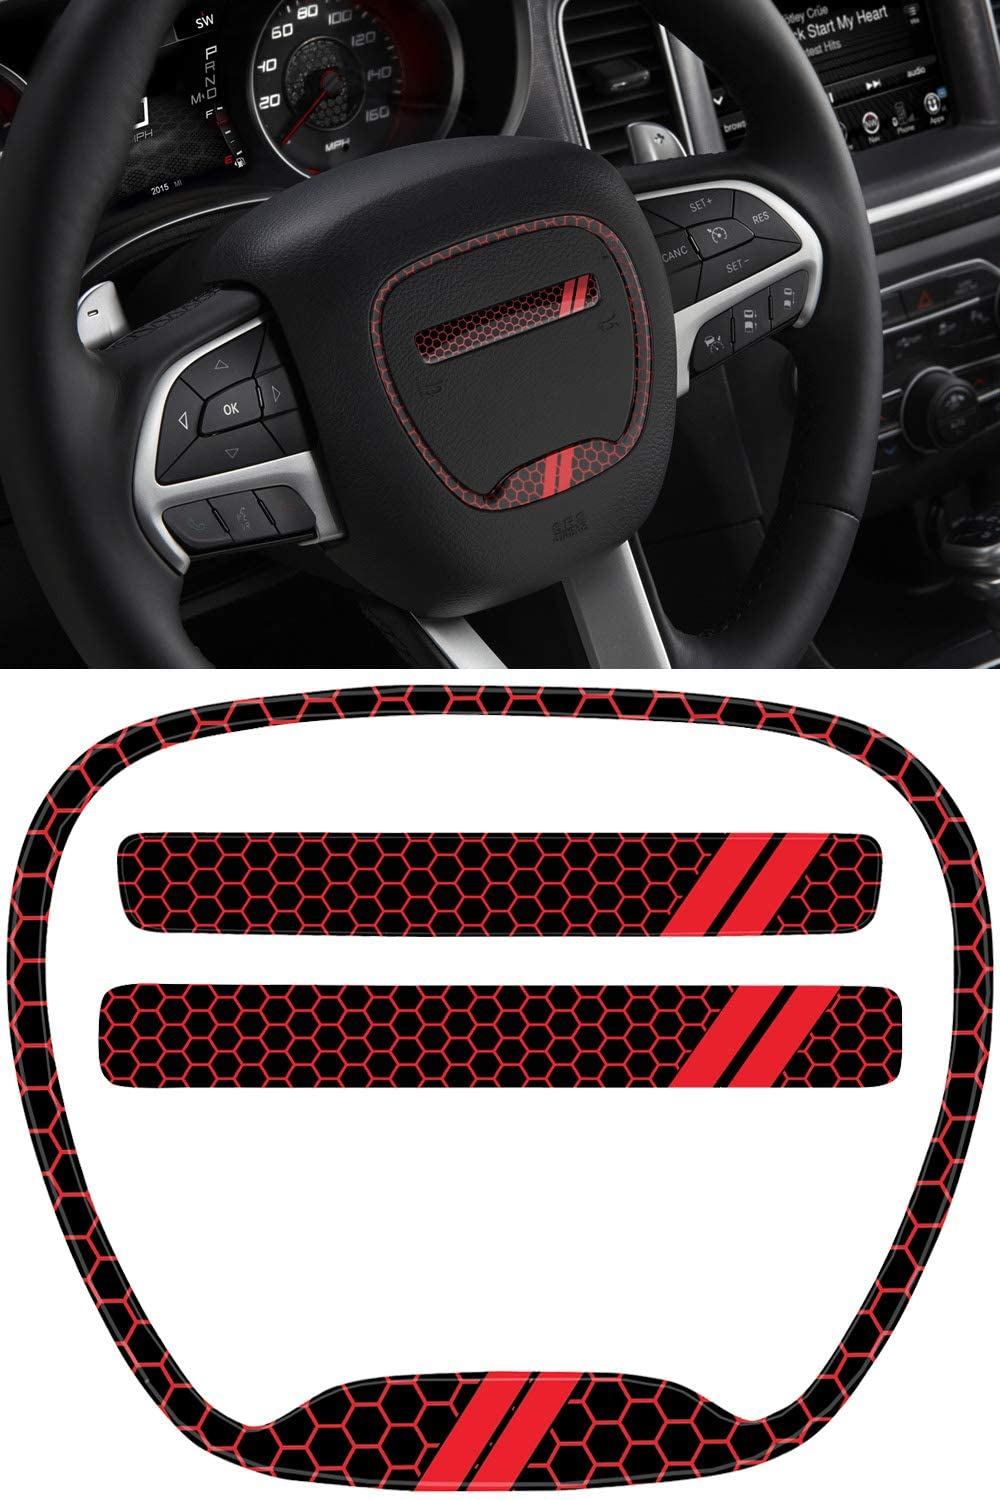 GRIDREADY Steering Wheel Emblem Kit Compatible with 2015-2020 Dodge Charger | 3D Domed Badge Overlay Decal Trim Cover Sticker Set | Charger Interior Accessories (Red)